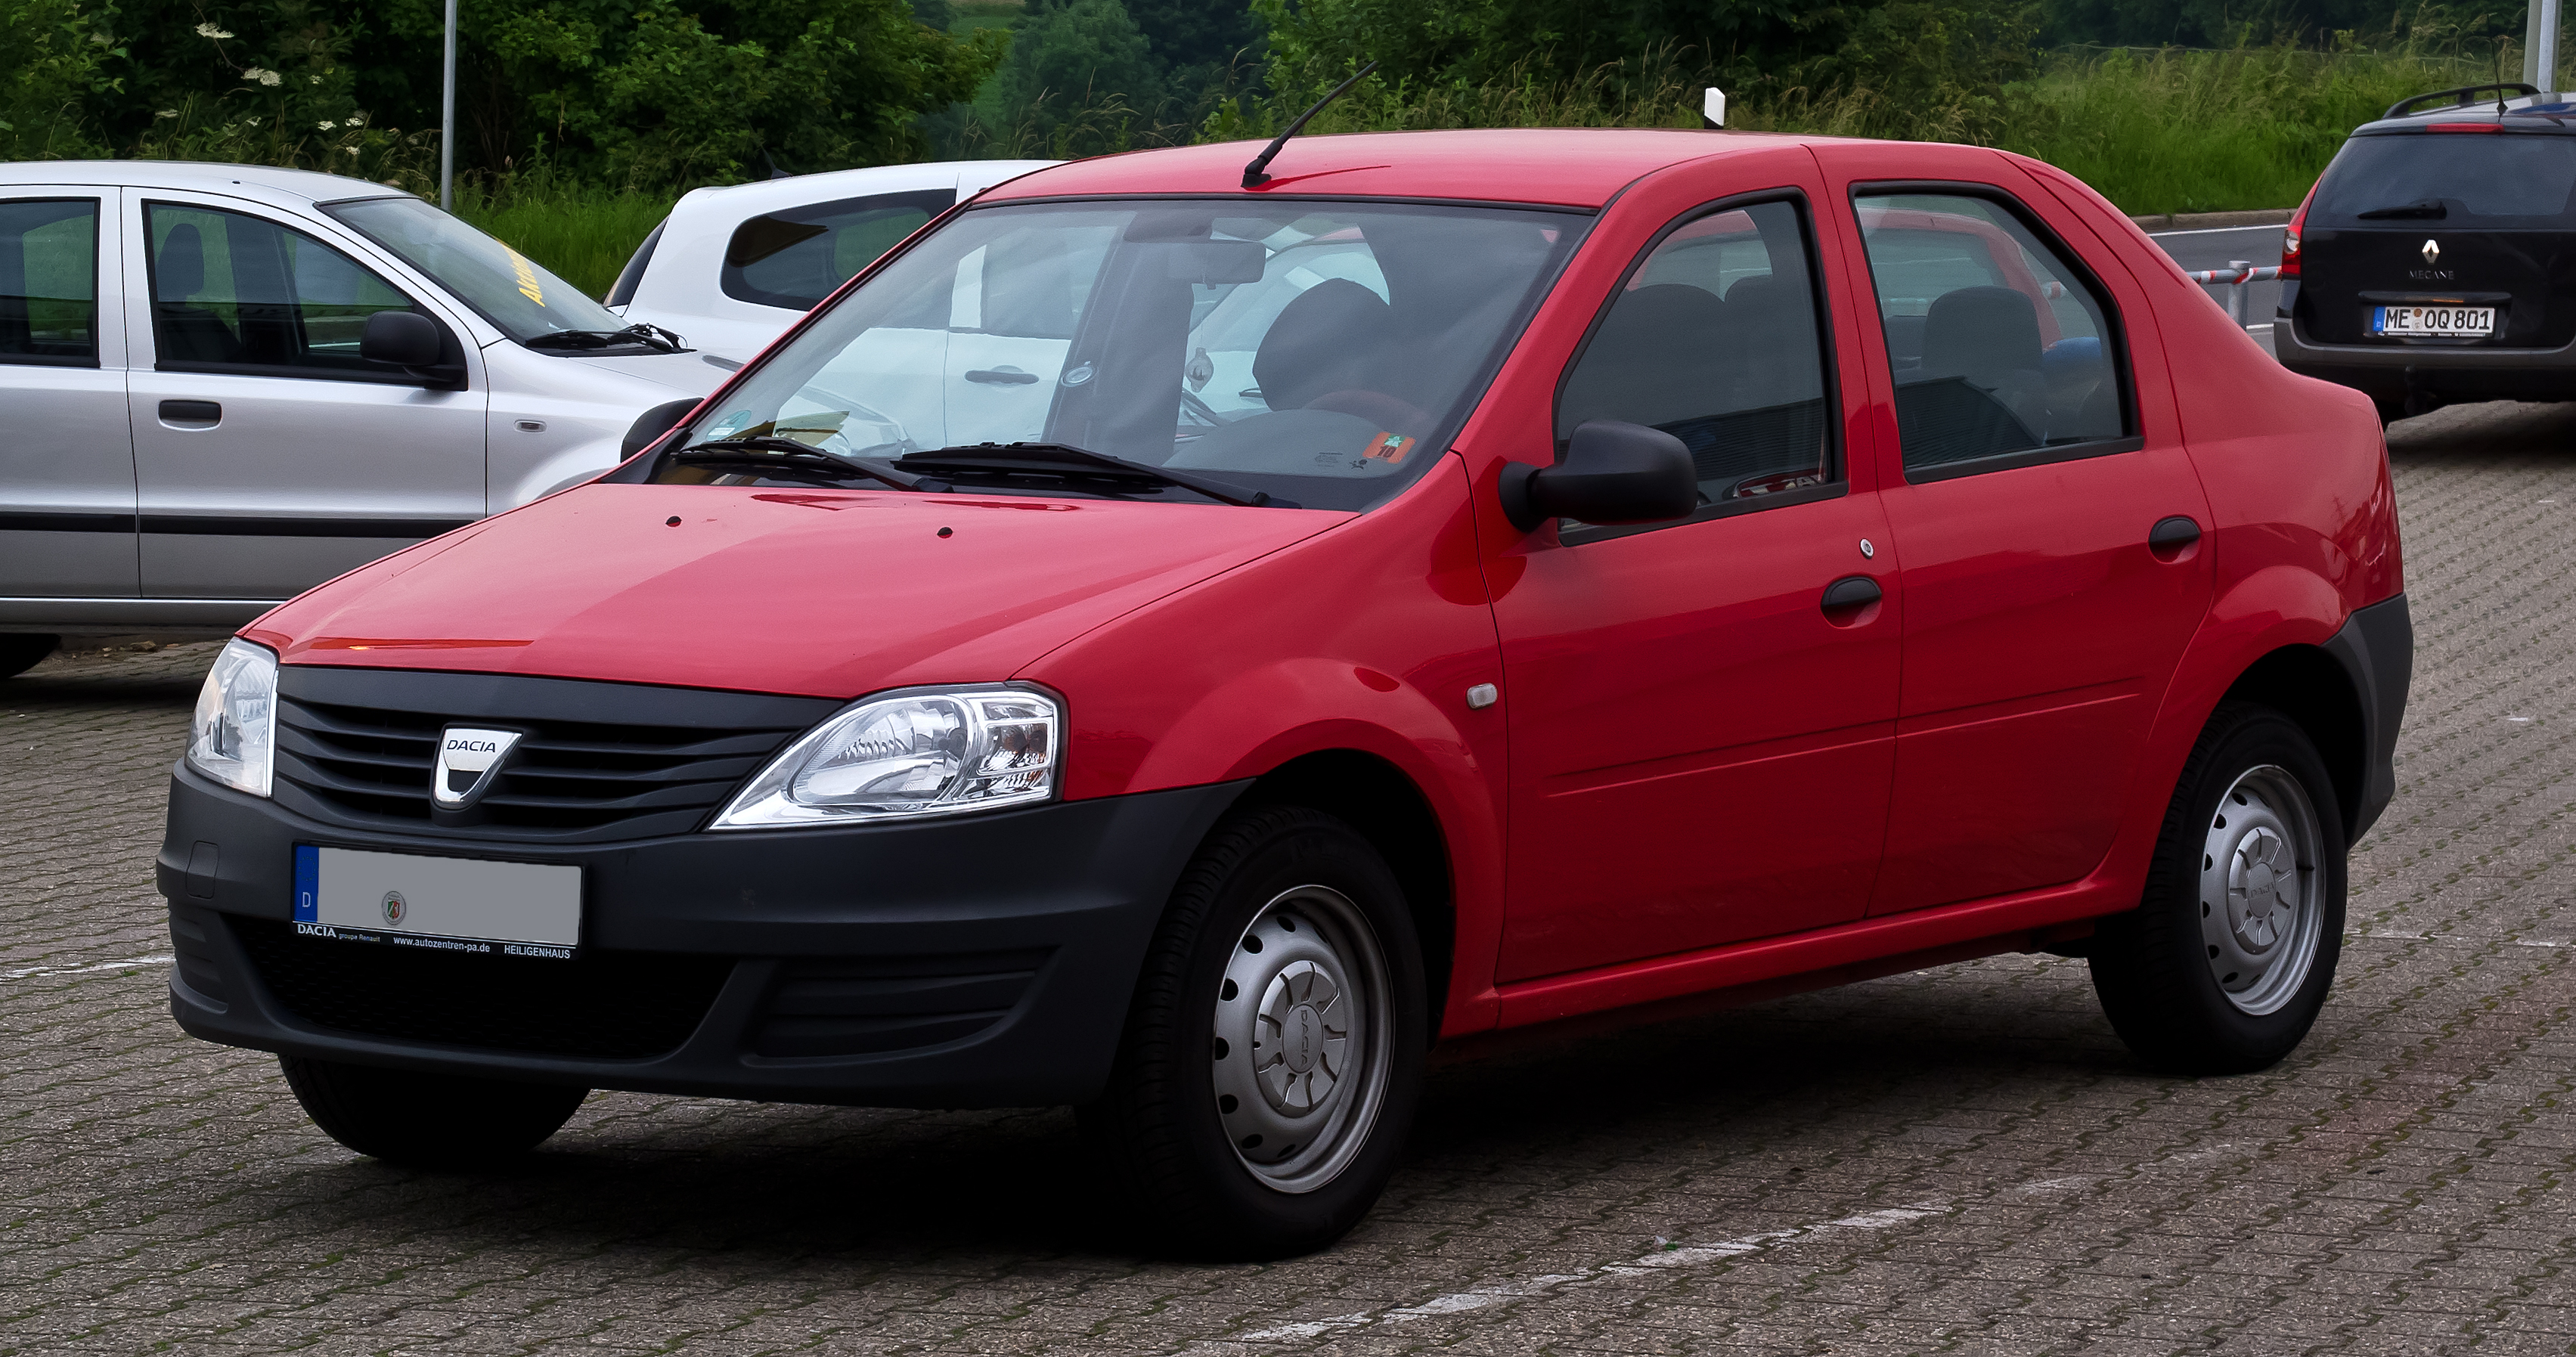 file dacia logan 1 4 mpi facelift frontansicht 19 juni 2012 wikimedia. Black Bedroom Furniture Sets. Home Design Ideas